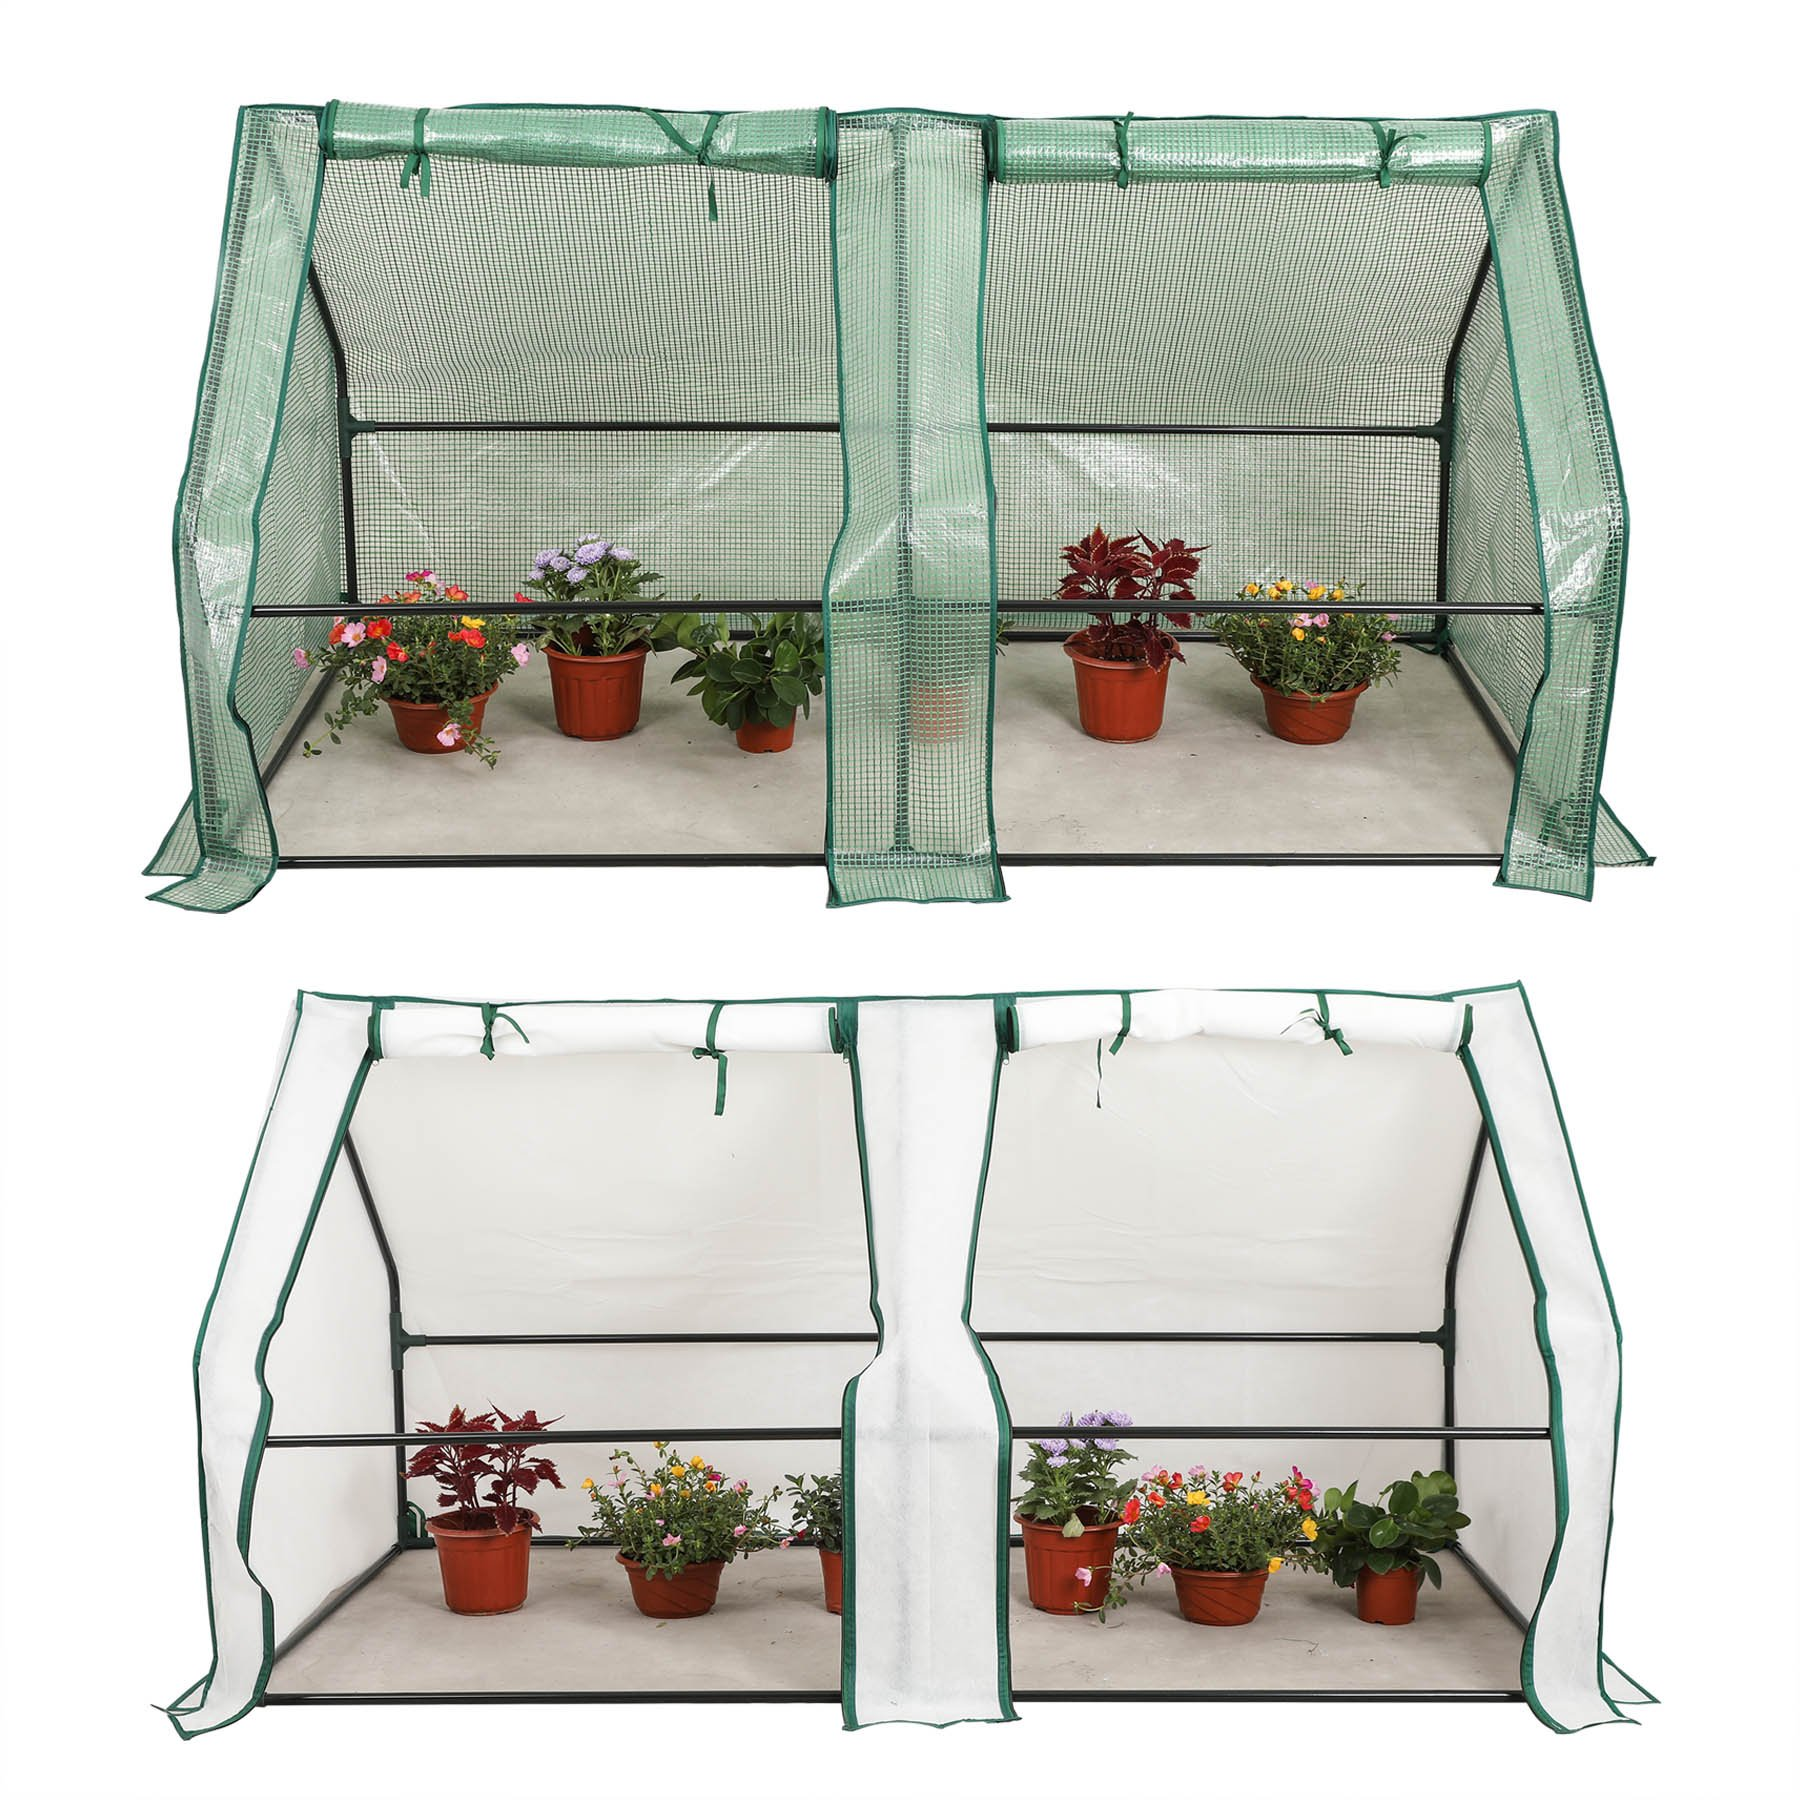 CO-Z Portable Greenhouse Mini Hot House with PE and Non-Woven Cover, Waterproof Cloche Greenhouse and UV Protected Greenhouse Tent, 5.9 x 3.0 x 3.0 Feet. by CO-Z (Image #1)